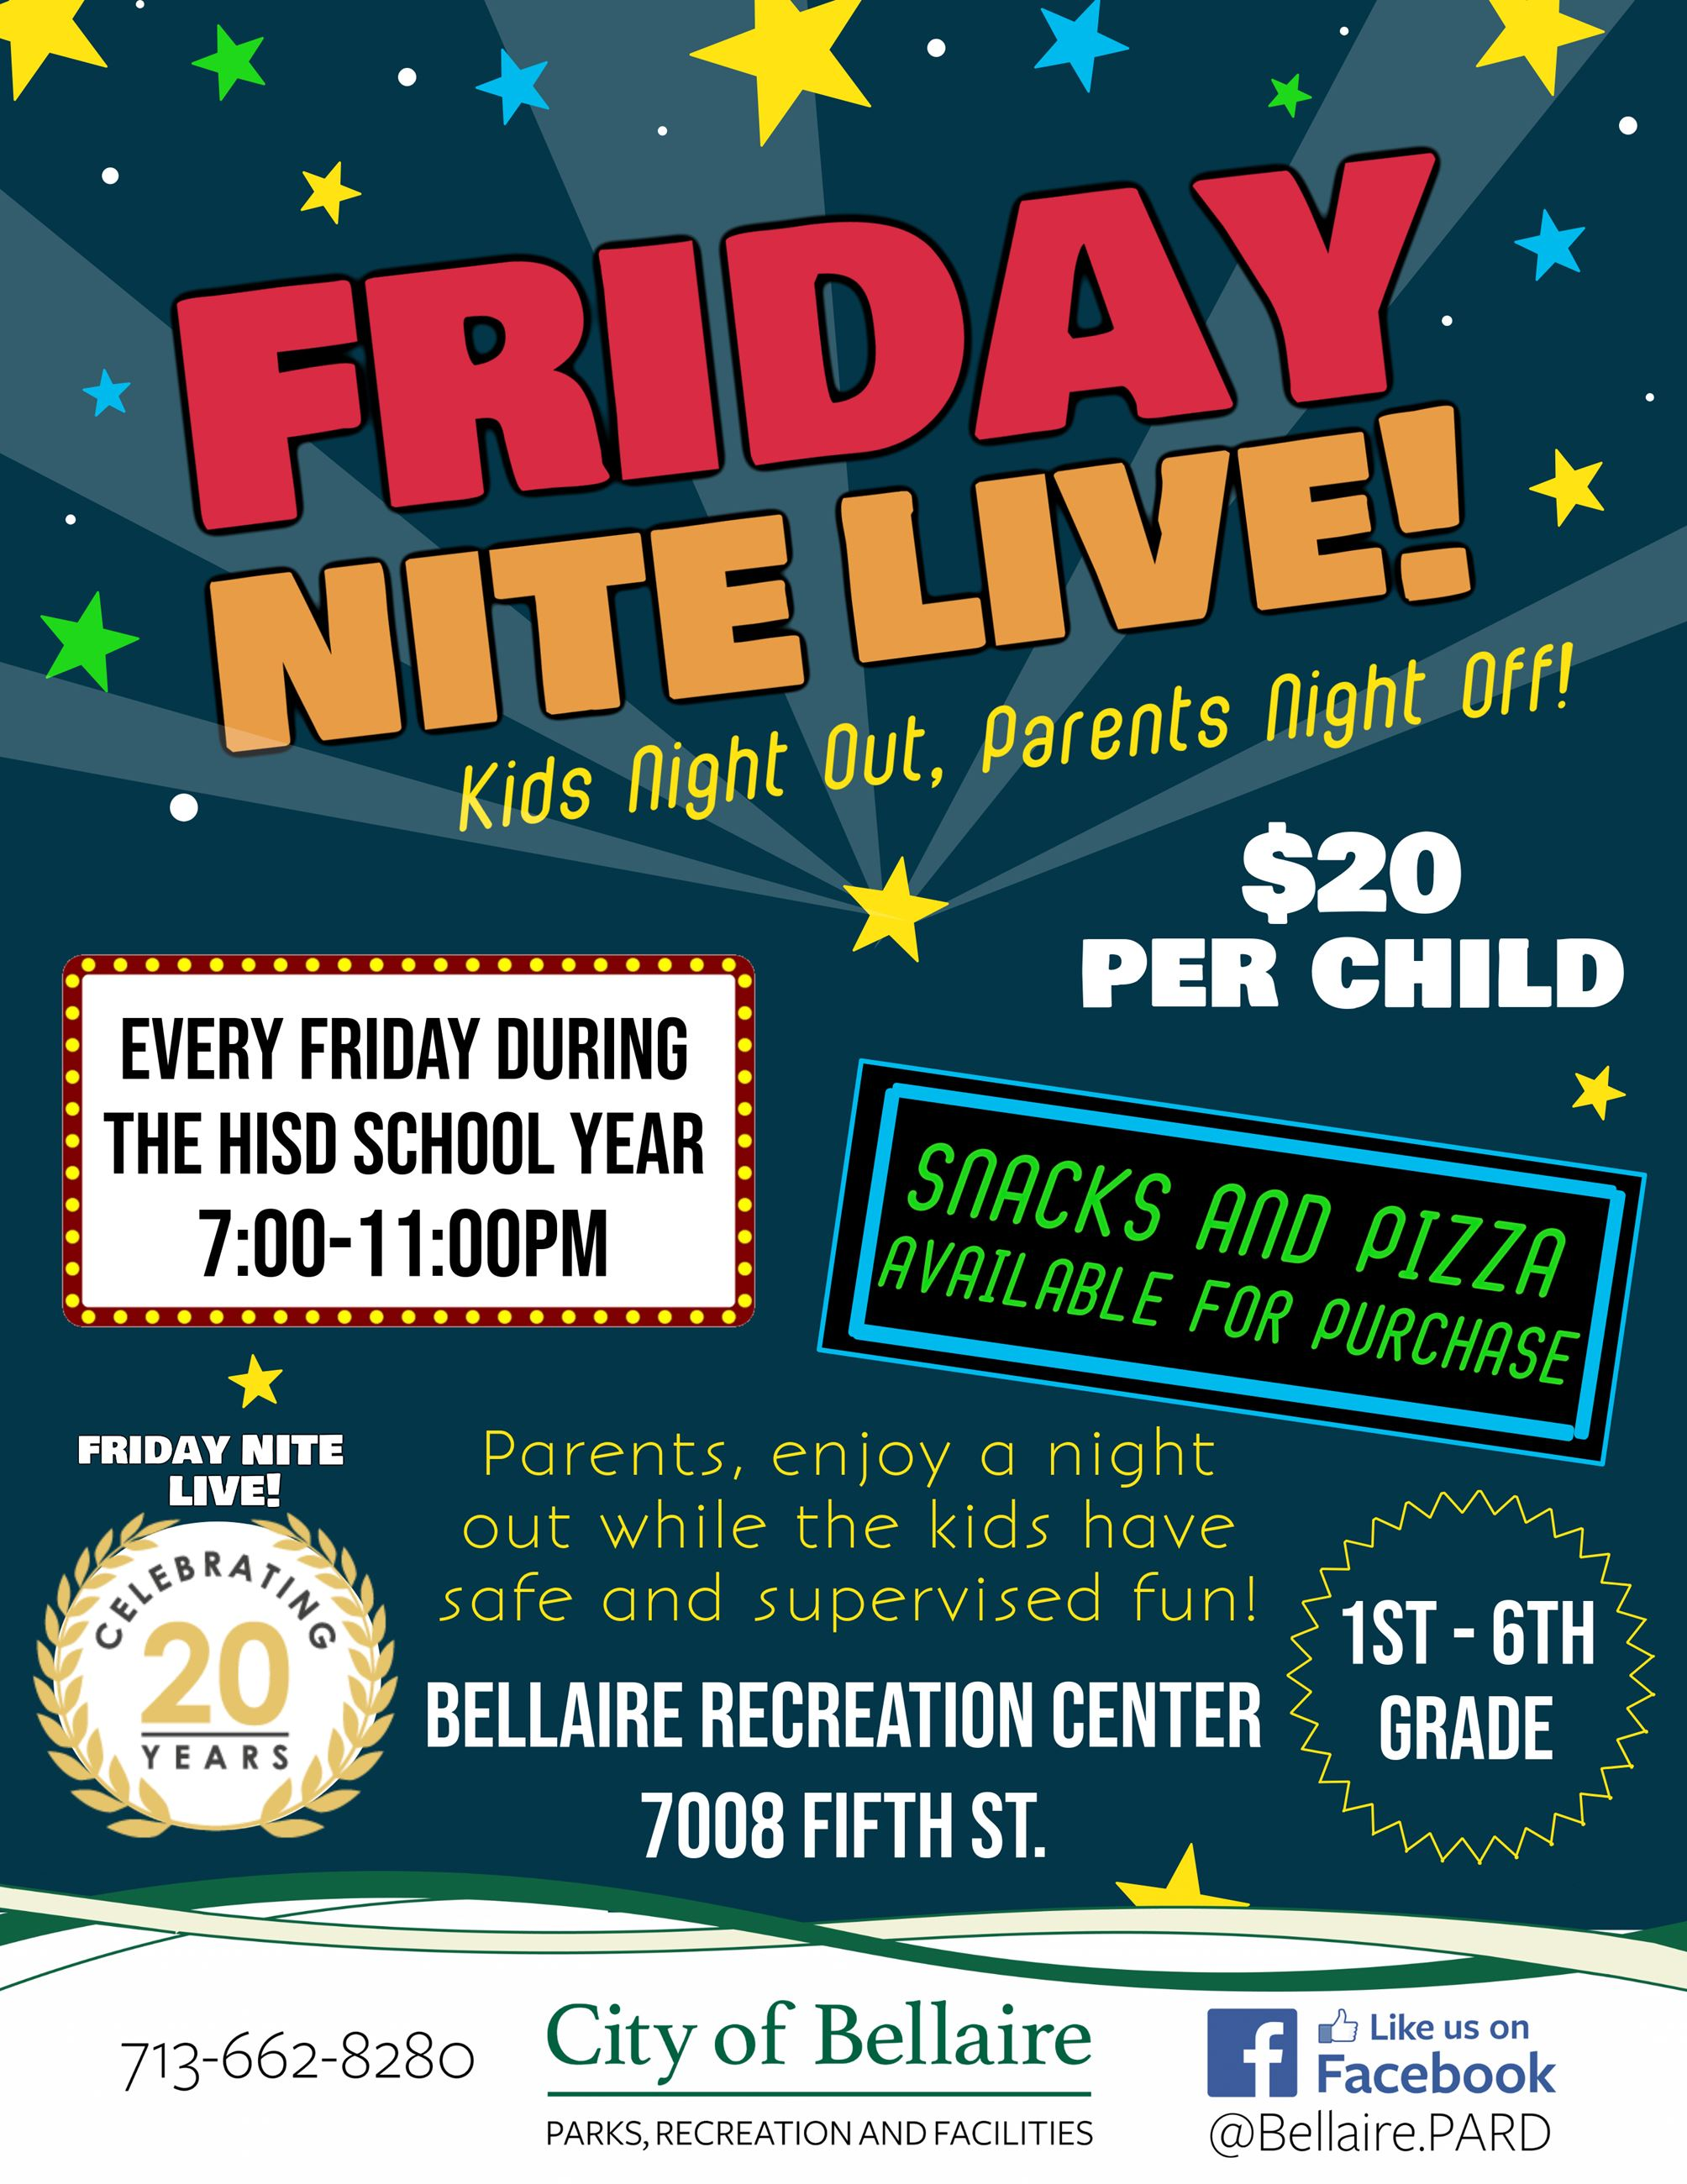 Friday Nite Live